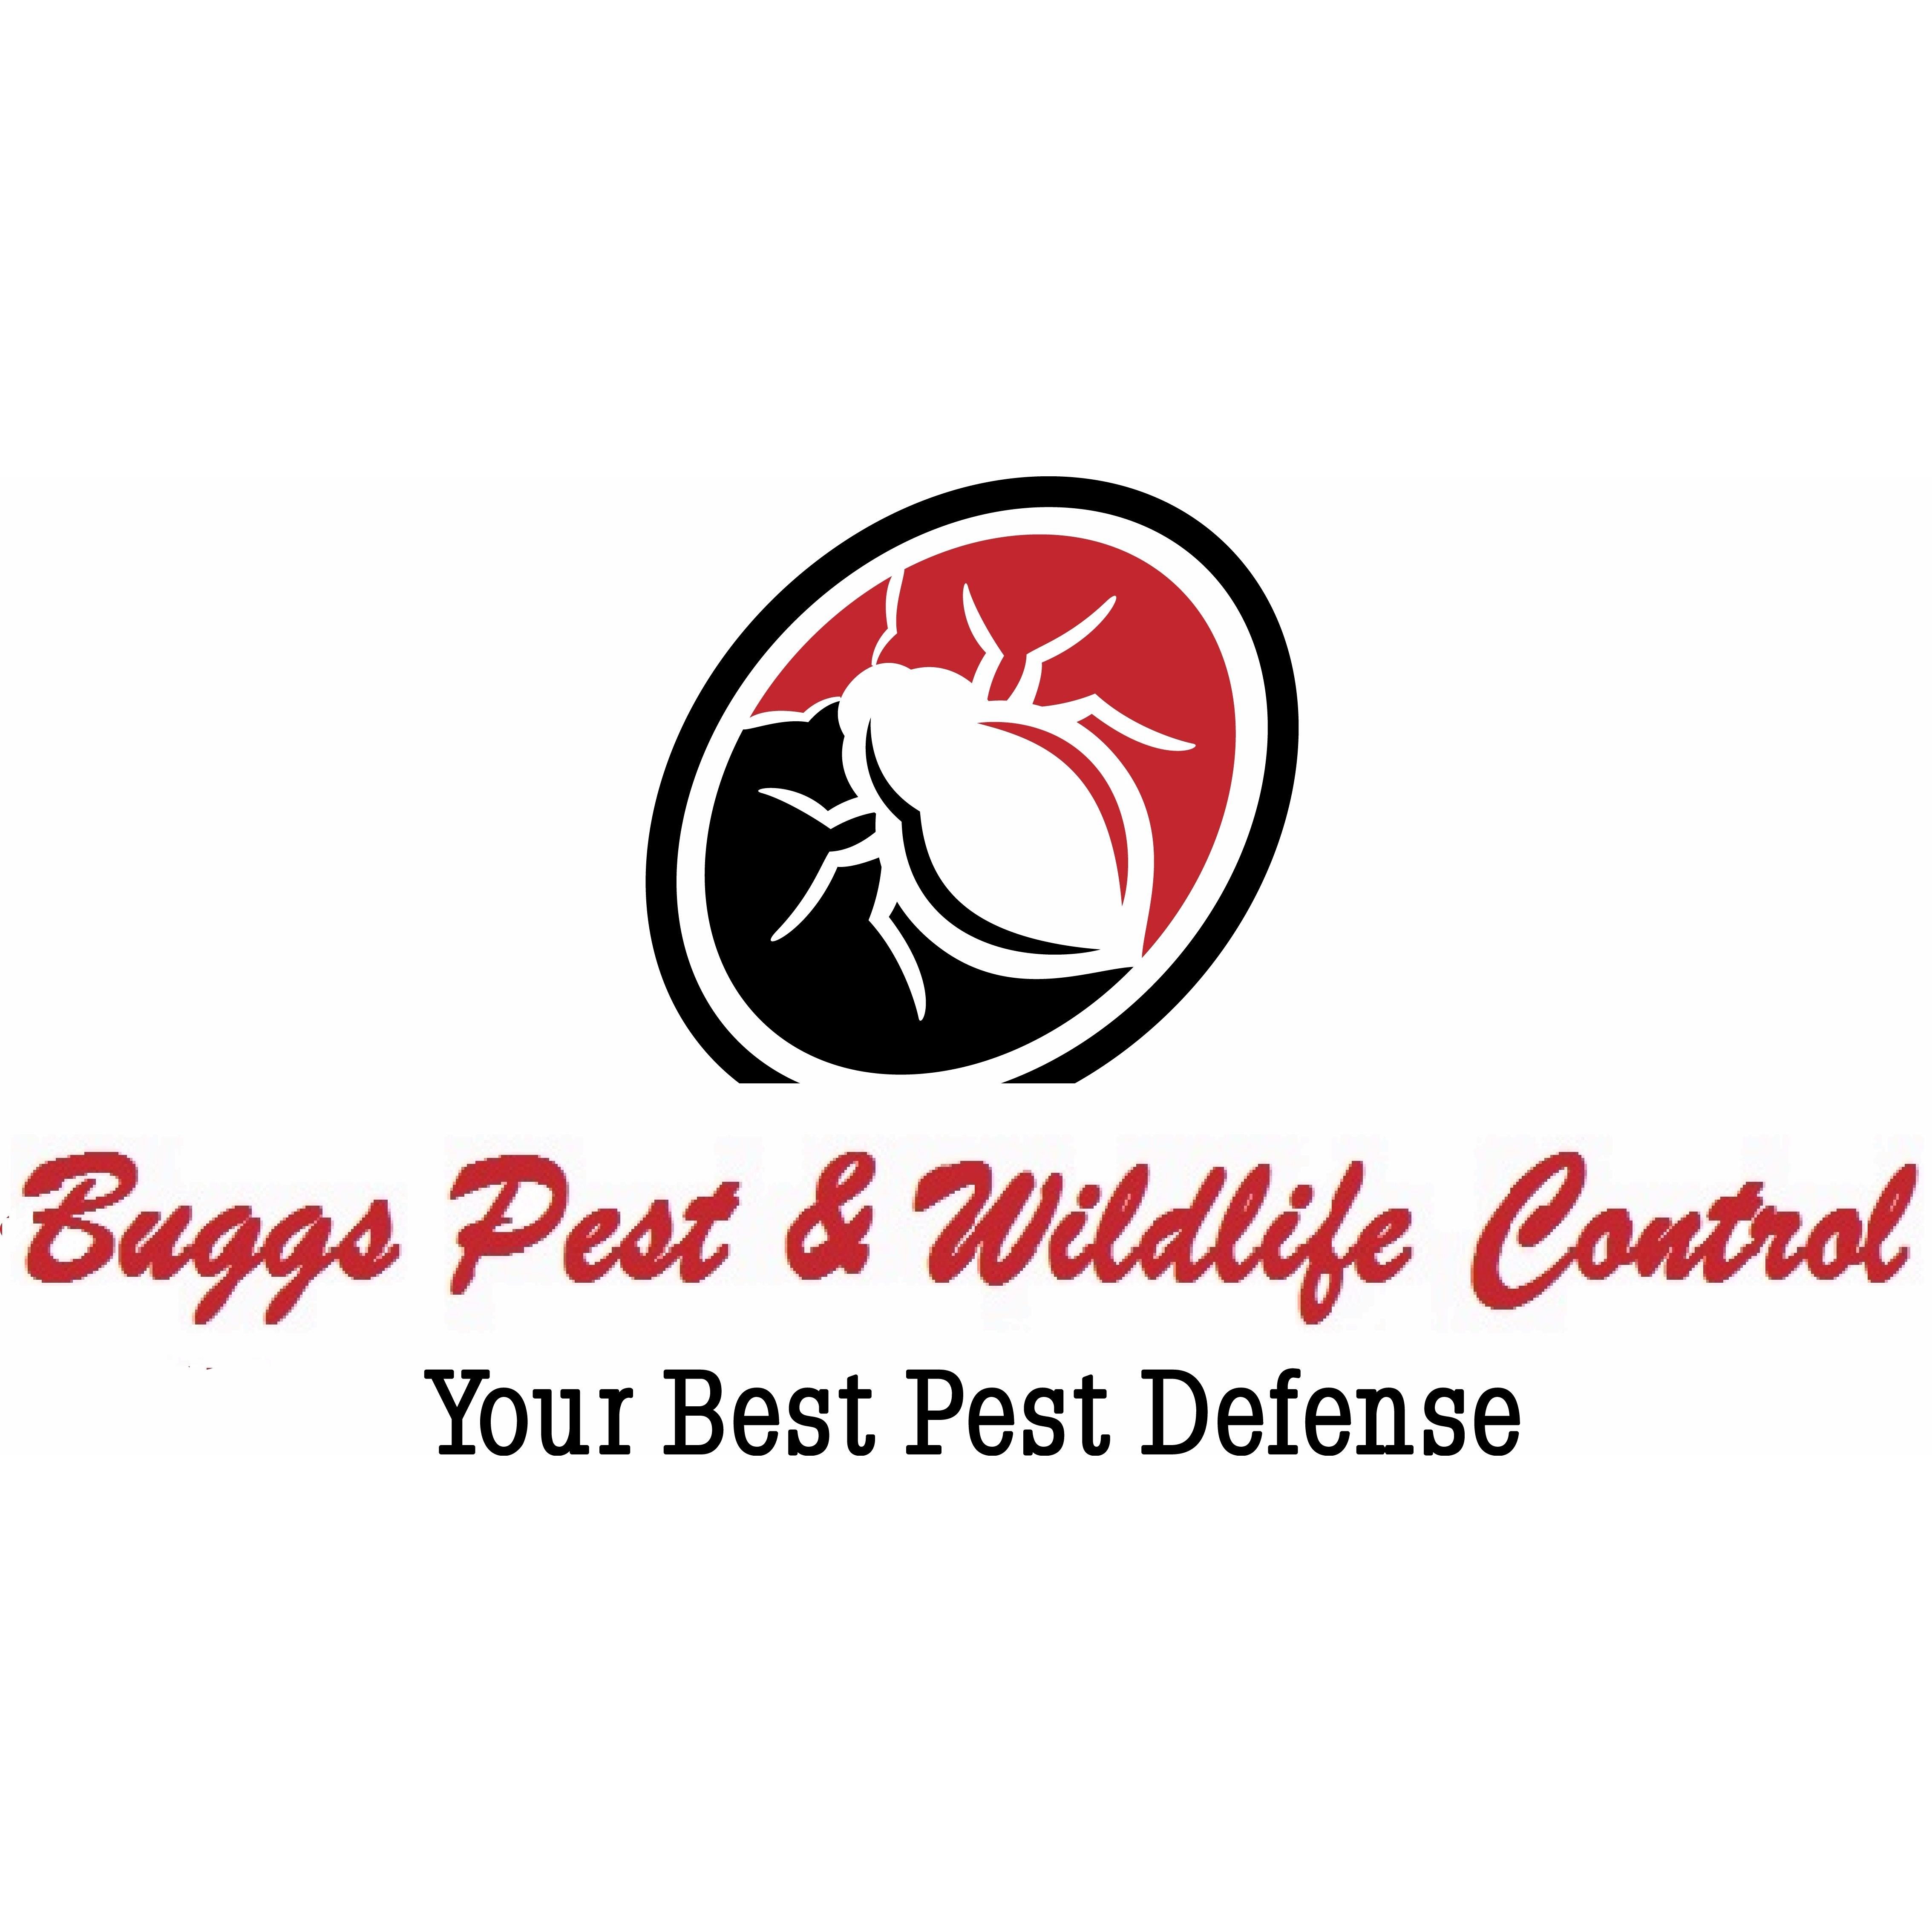 Buggs Pest & Wildlife Control In Kansas City, Mo  (816. Philadelphia University Architecture. Workers Compensation Lawyers In Nyc. Flash Animation Tutorial For Beginners. Promotional Sport Bottles Apex Auto Puyallup. Best Network Management Tools. How To Start An Online Ecommerce Store. Aarp Insurance Providers Max Ira Contribution. World Energy Outlook 2012 Pdf